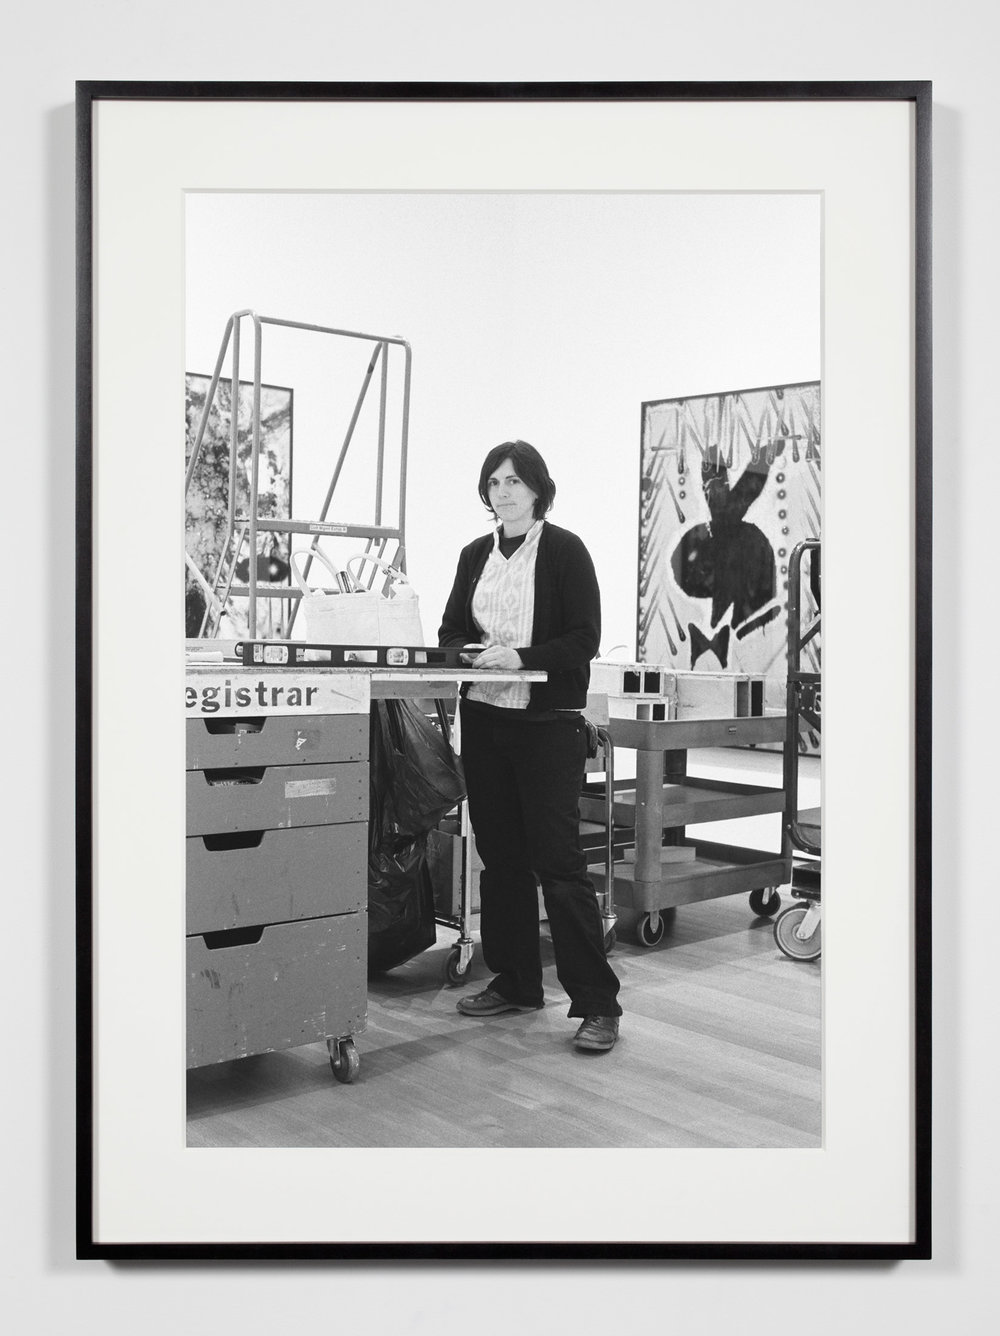 Museum Preparator, New York, New York, September 26, 2009   2011  Epson Ultrachrome K3 archival ink jet print on Hahnemühle Photo Rag paper  36 3/8 x 26 3/8 inches   Industrial Portraits, 2008–    A Diagram of Forces, 2011